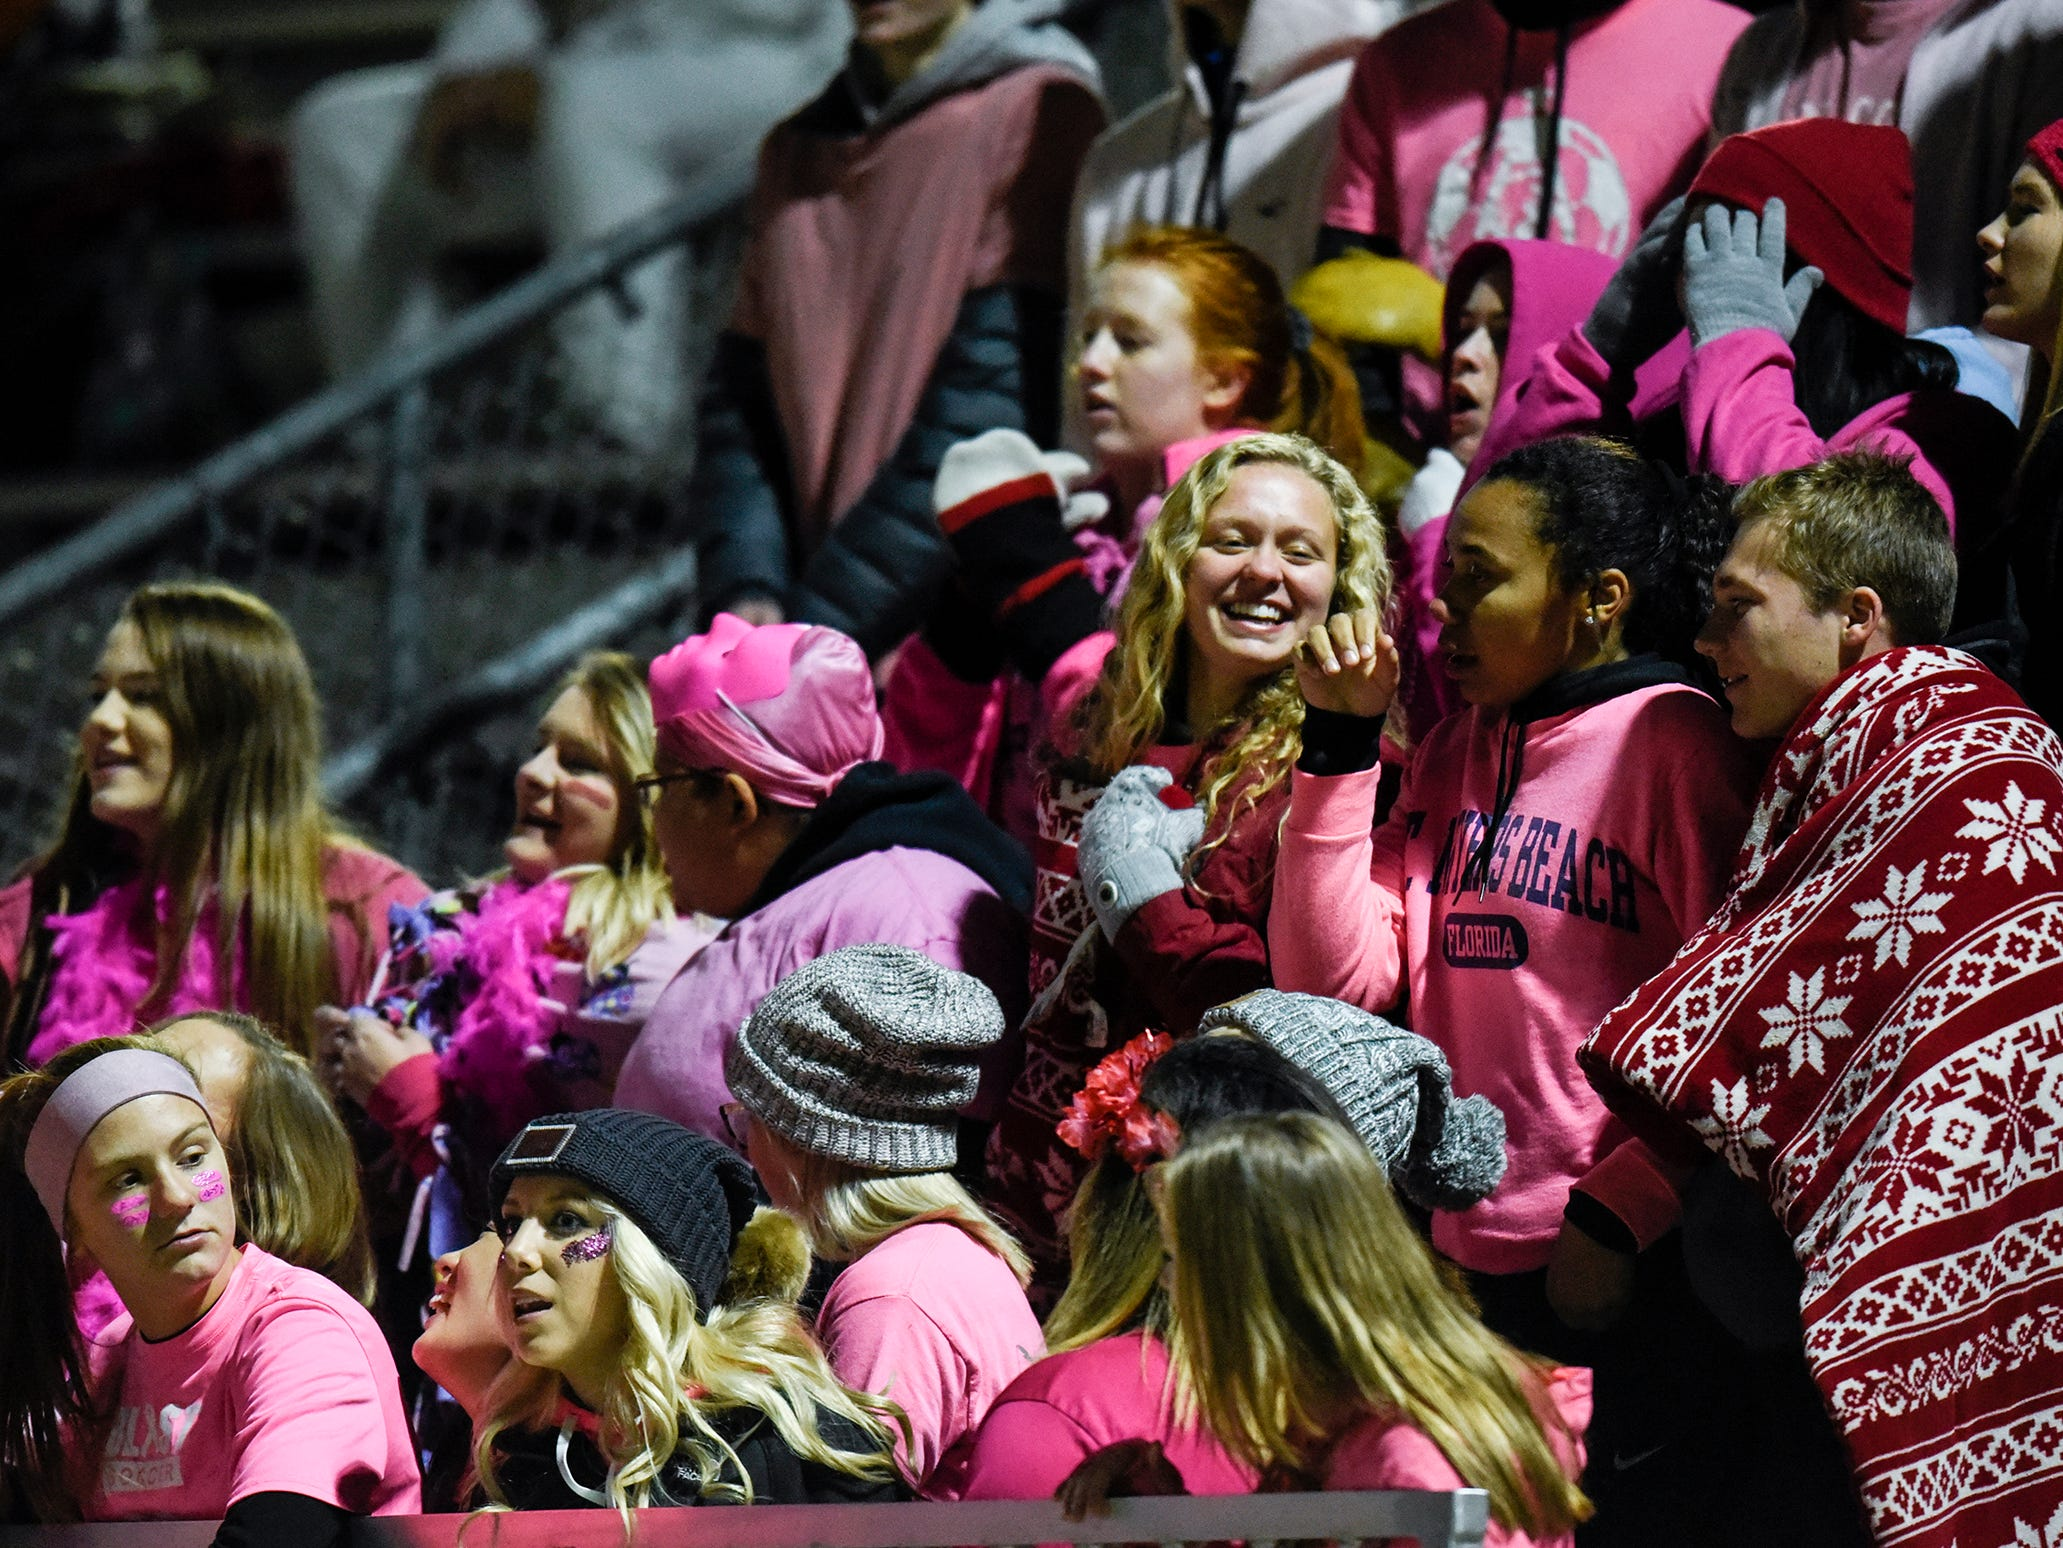 Apollo fans cheer for their team before the start of the Tuesday, Oct. 23, game against Little Falls in St. Cloud.